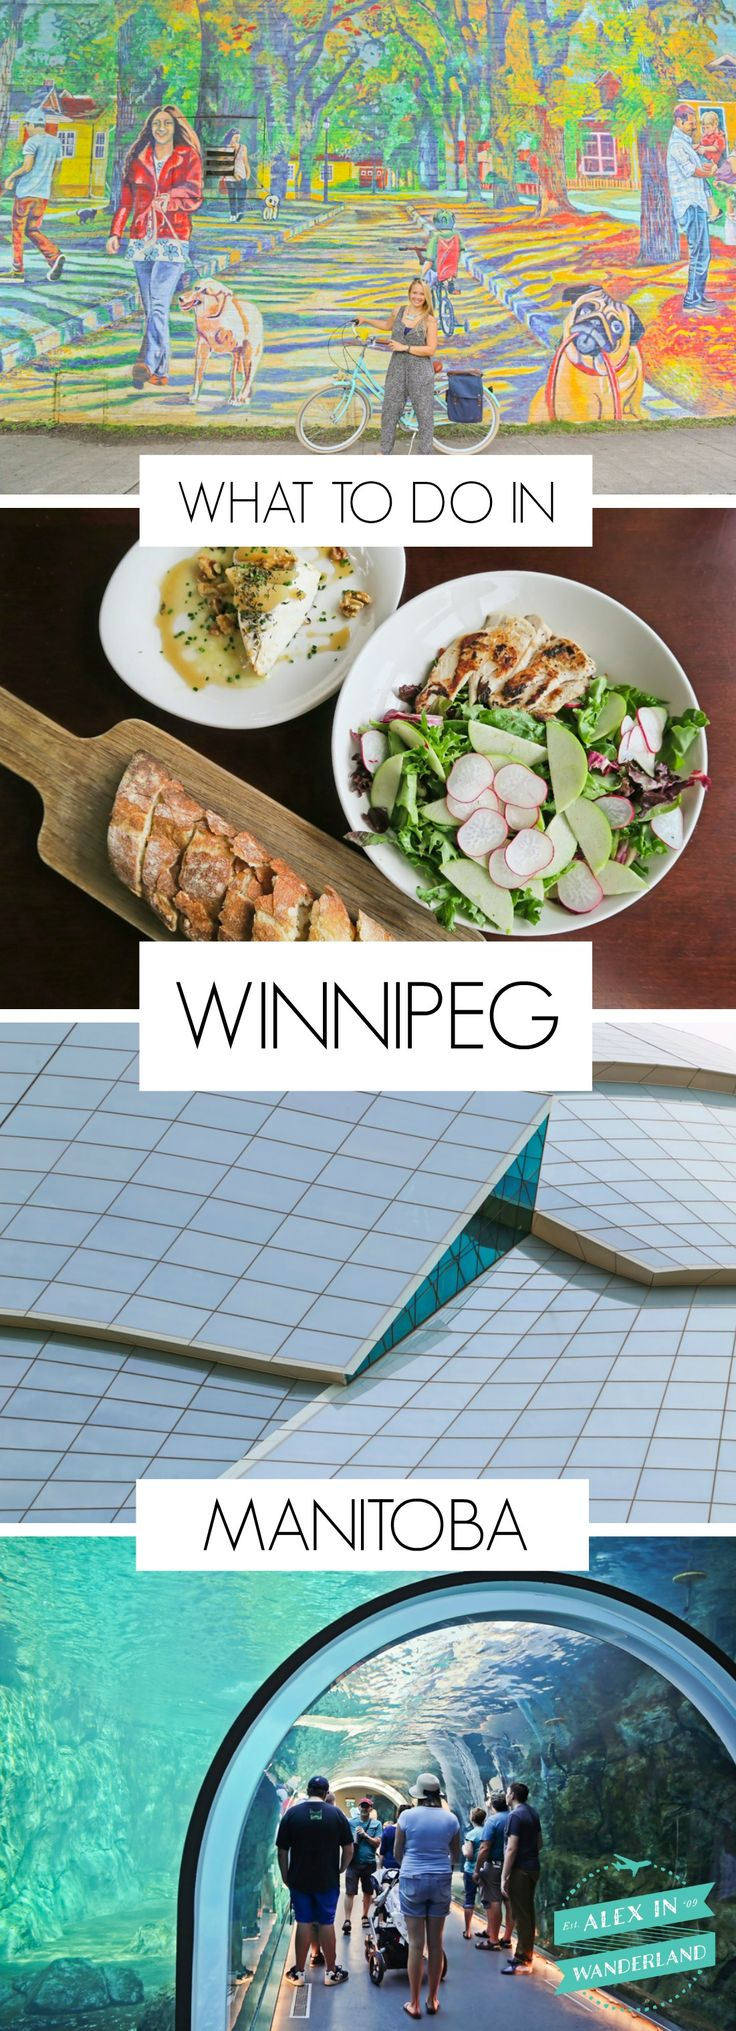 Given Winnipeg's small size, I definitely didn't anticipate finding in a Canadian capital bursting with creative people, lively music, delicious food, inspiring art and architecture, and a calendar overflowing with events to attend! Here are my top picks for what to do in Winnipeg, Manitoba.